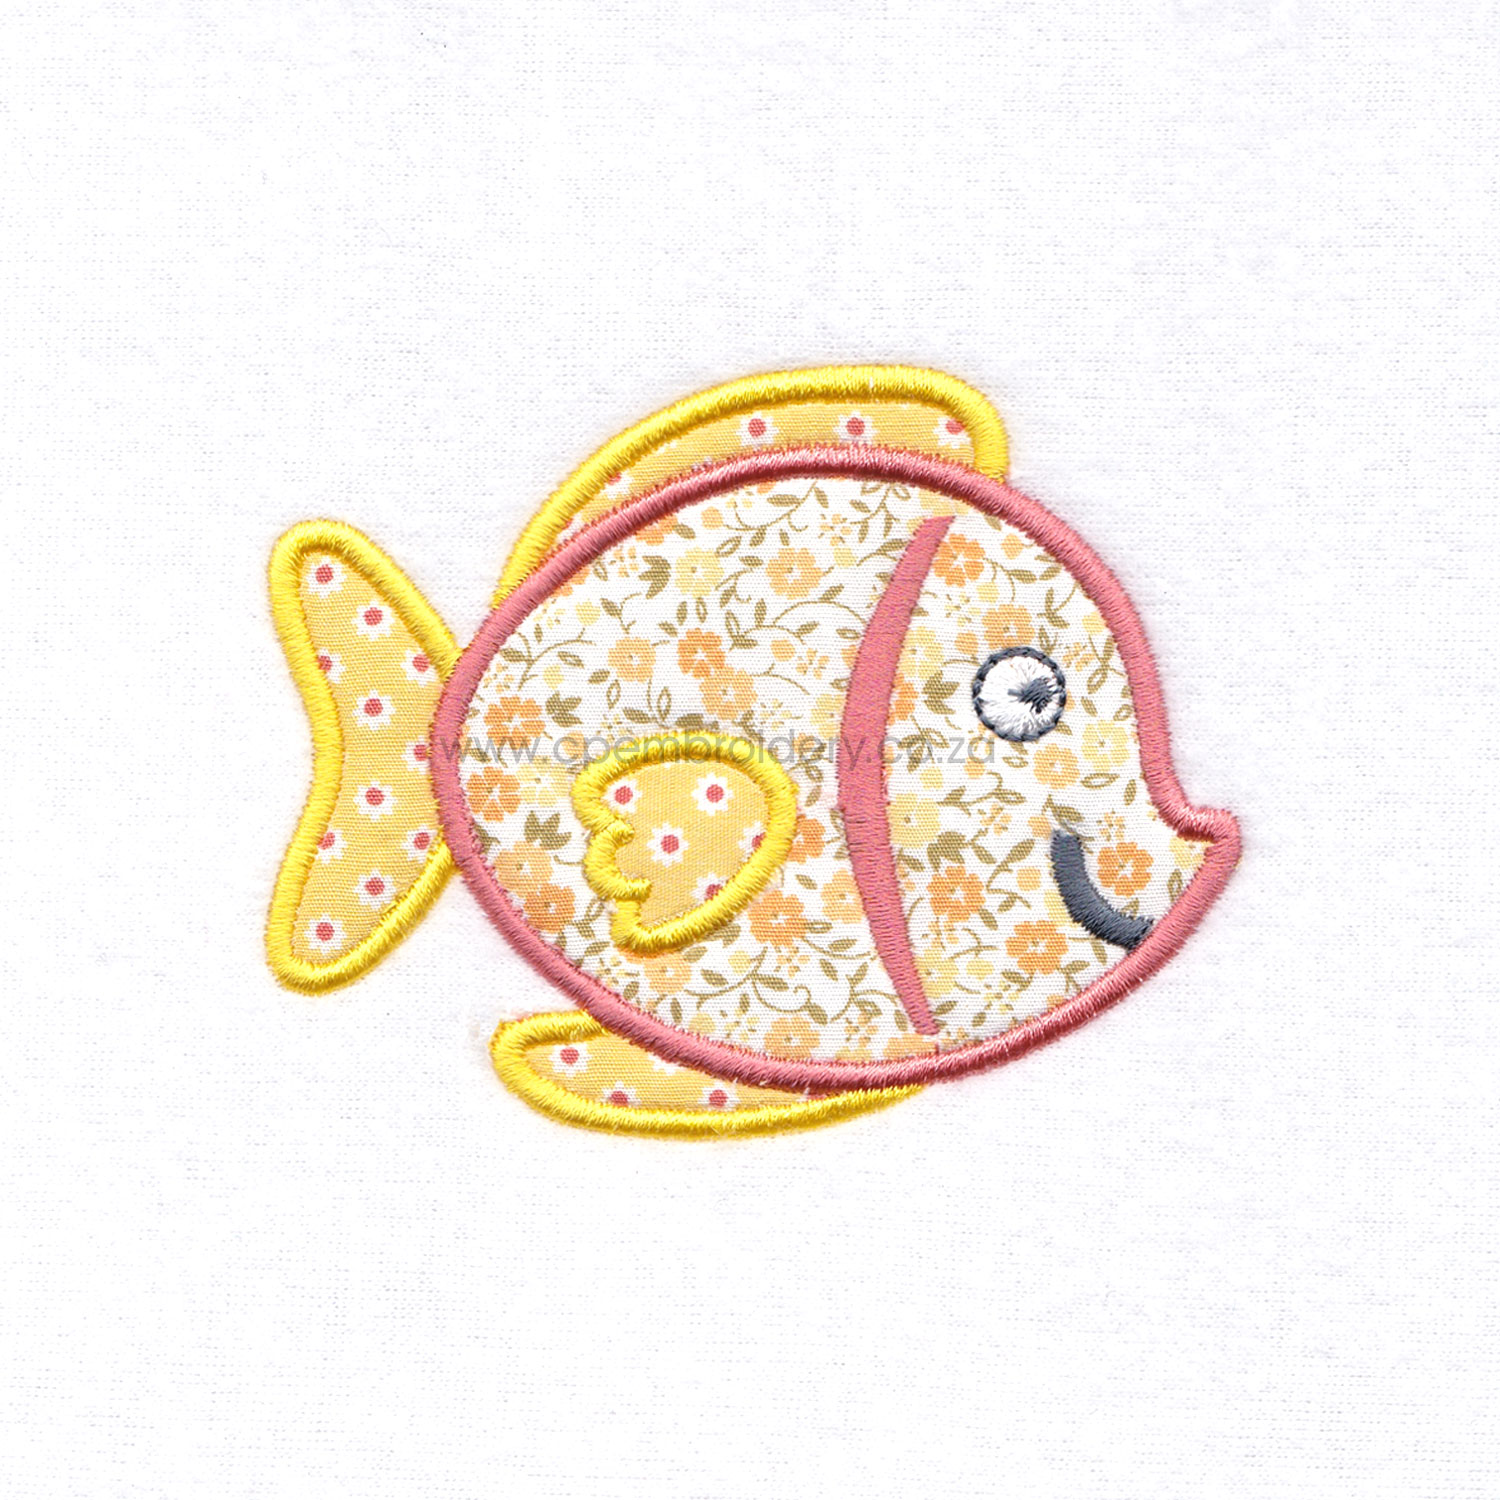 yellow orange tang smiling pet fish cute applique machine embroidery download design